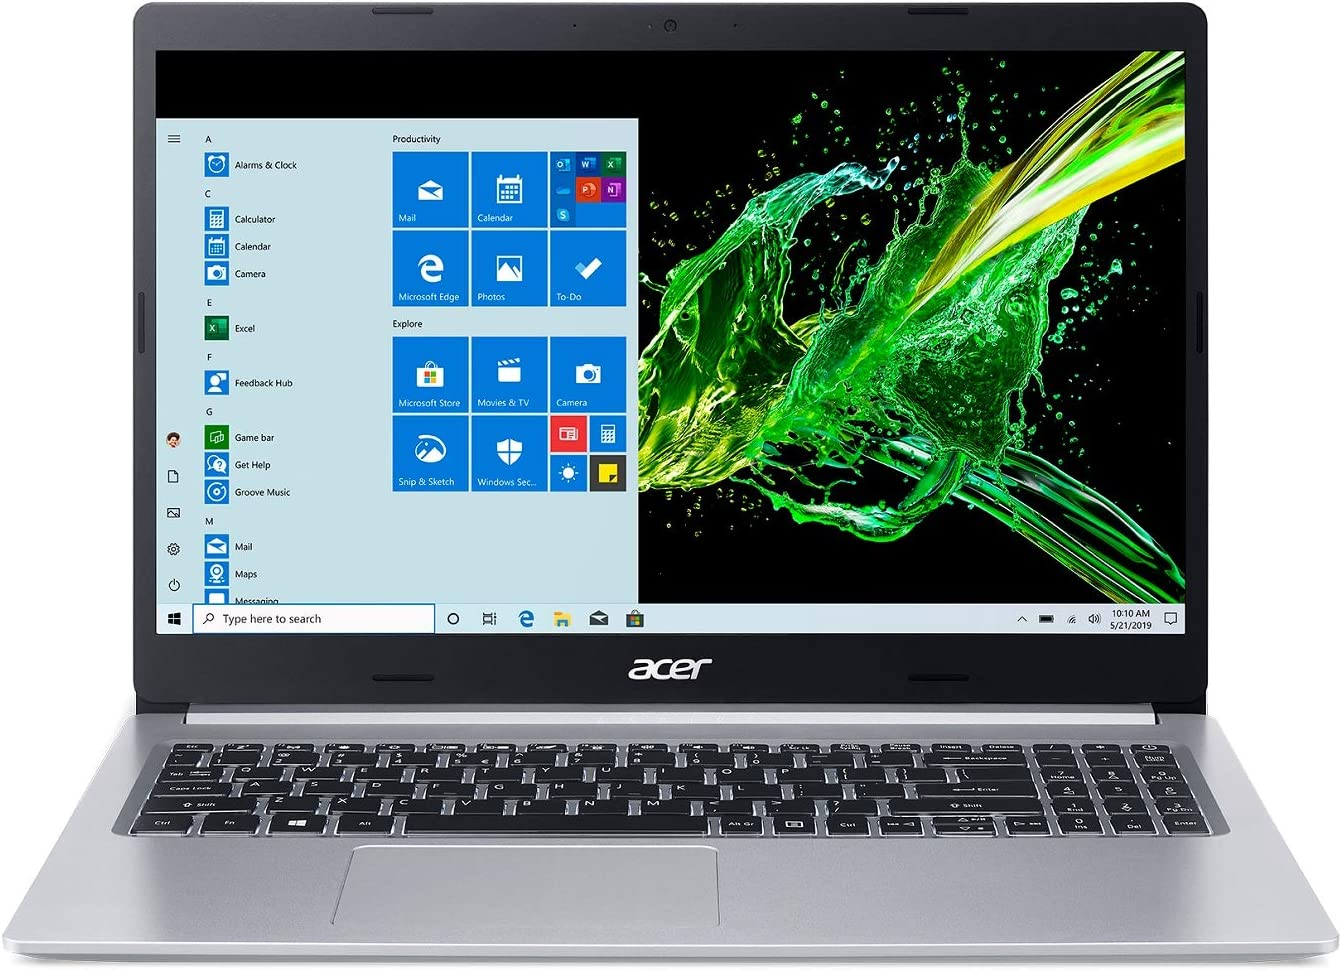 "Acer Aspire 5 A515-55G-57H8, 15.6"" Full HD IPS Display, 10th Gen Intel Core i5-1035G1, NVIDIA GeForce MX350, 8GB DDR4, 512GB NVMe SSD, WiFi 6, HD Webcam, Backlit Keyboard, Windows 10 Home"